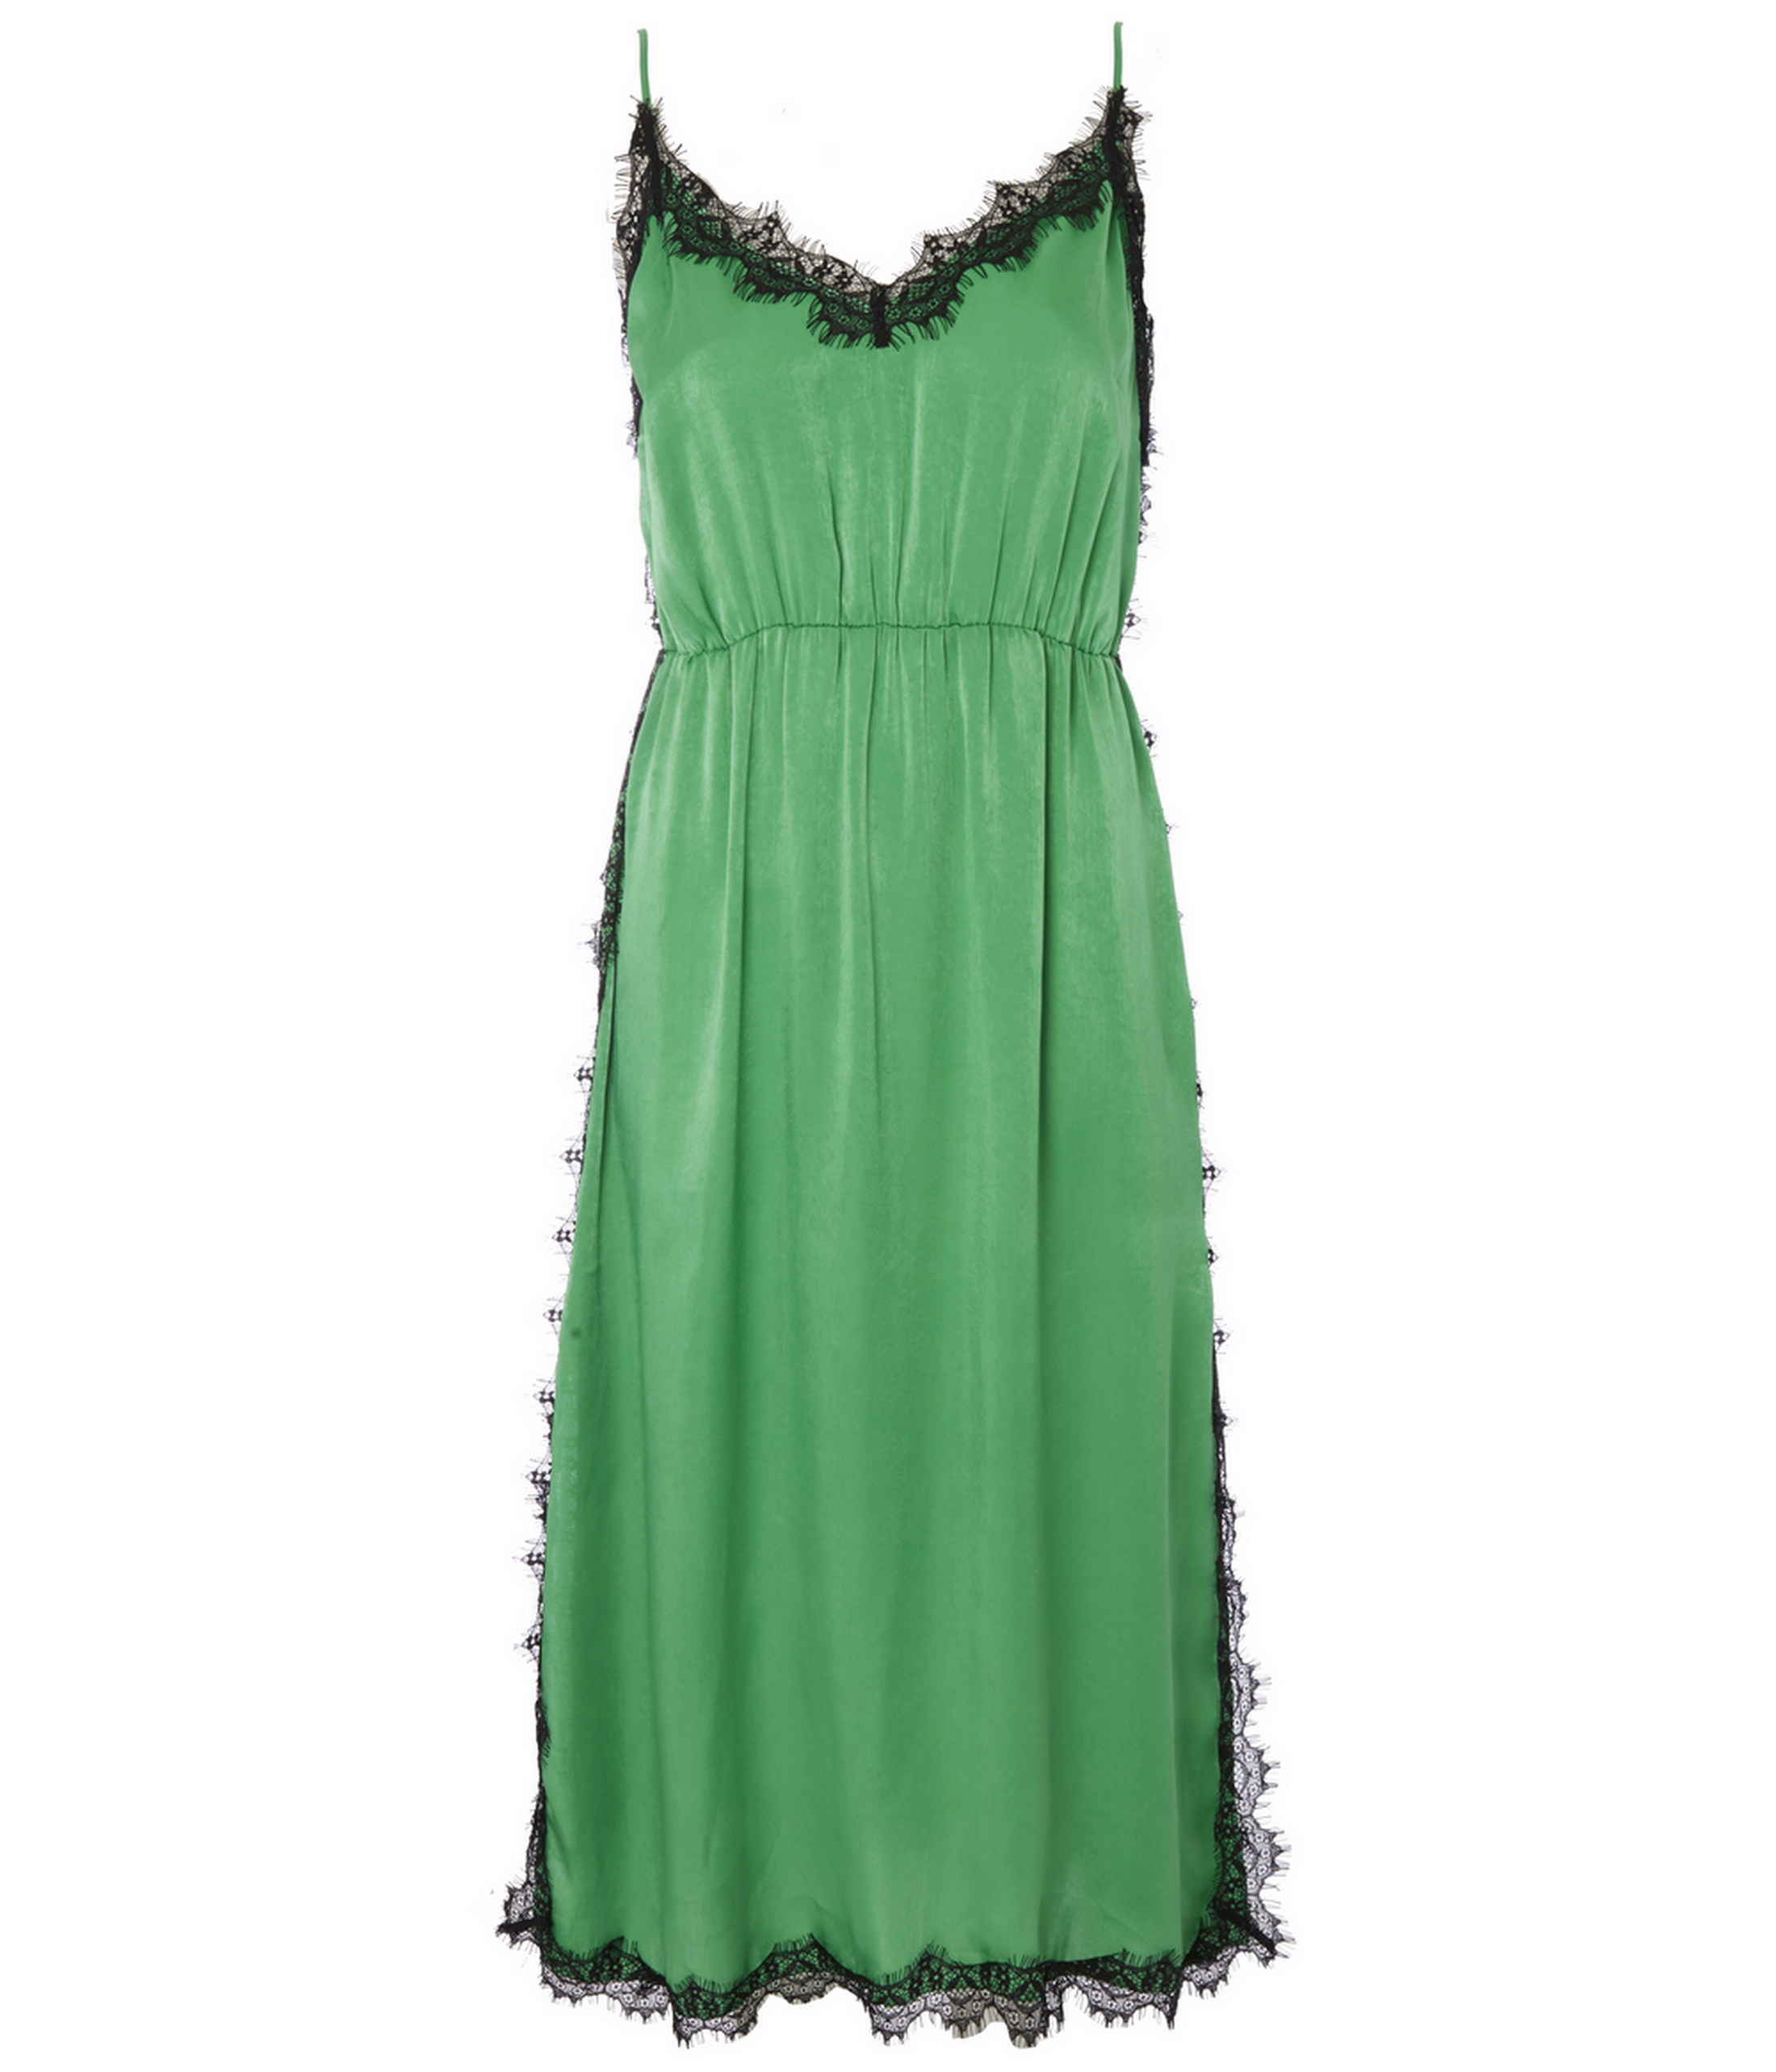 George at Asda Green Satin Lace Eyelash Trim Slip Dress, currently reduced to £10/AED44.81 from £18/AED80.67